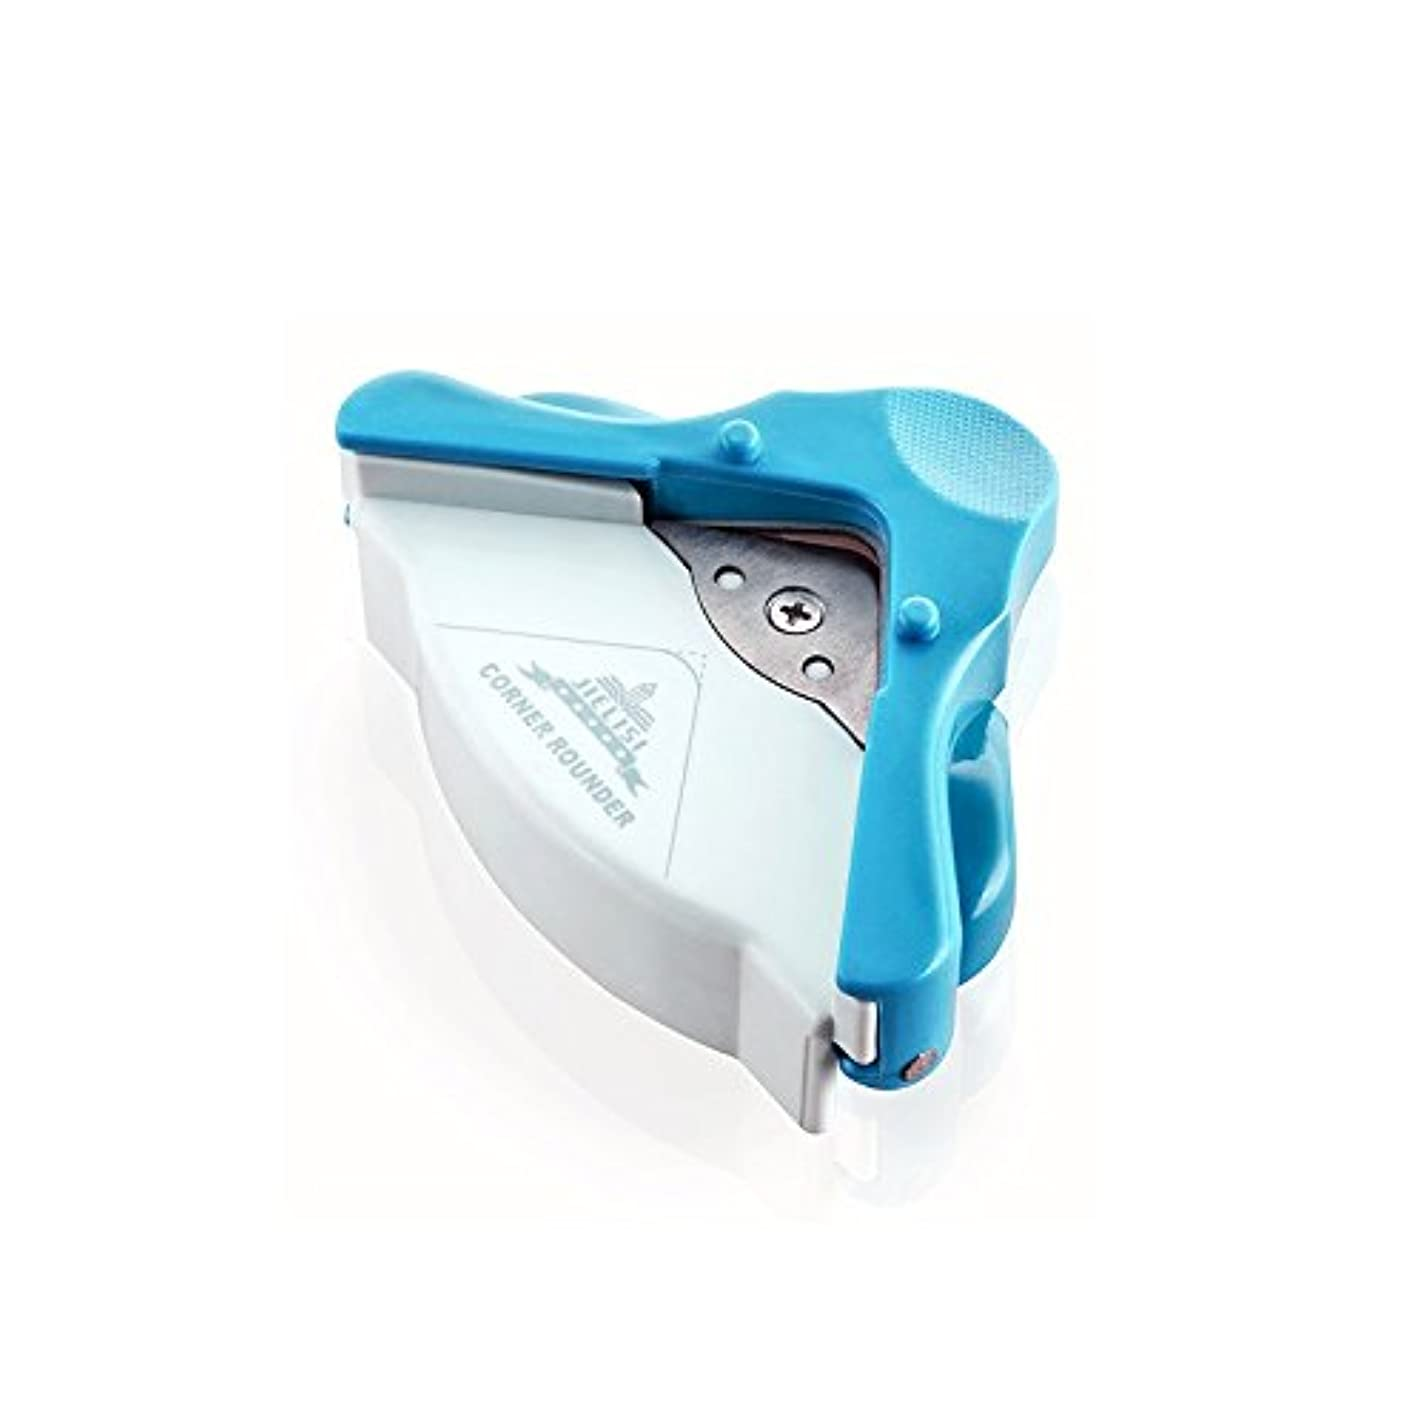 Corner Rounder with Chips Tray, Chrir.W Angle Eater Cutter Tool for Scrapbooking,Photo and Paper(Blue, 5mm) nme69912572